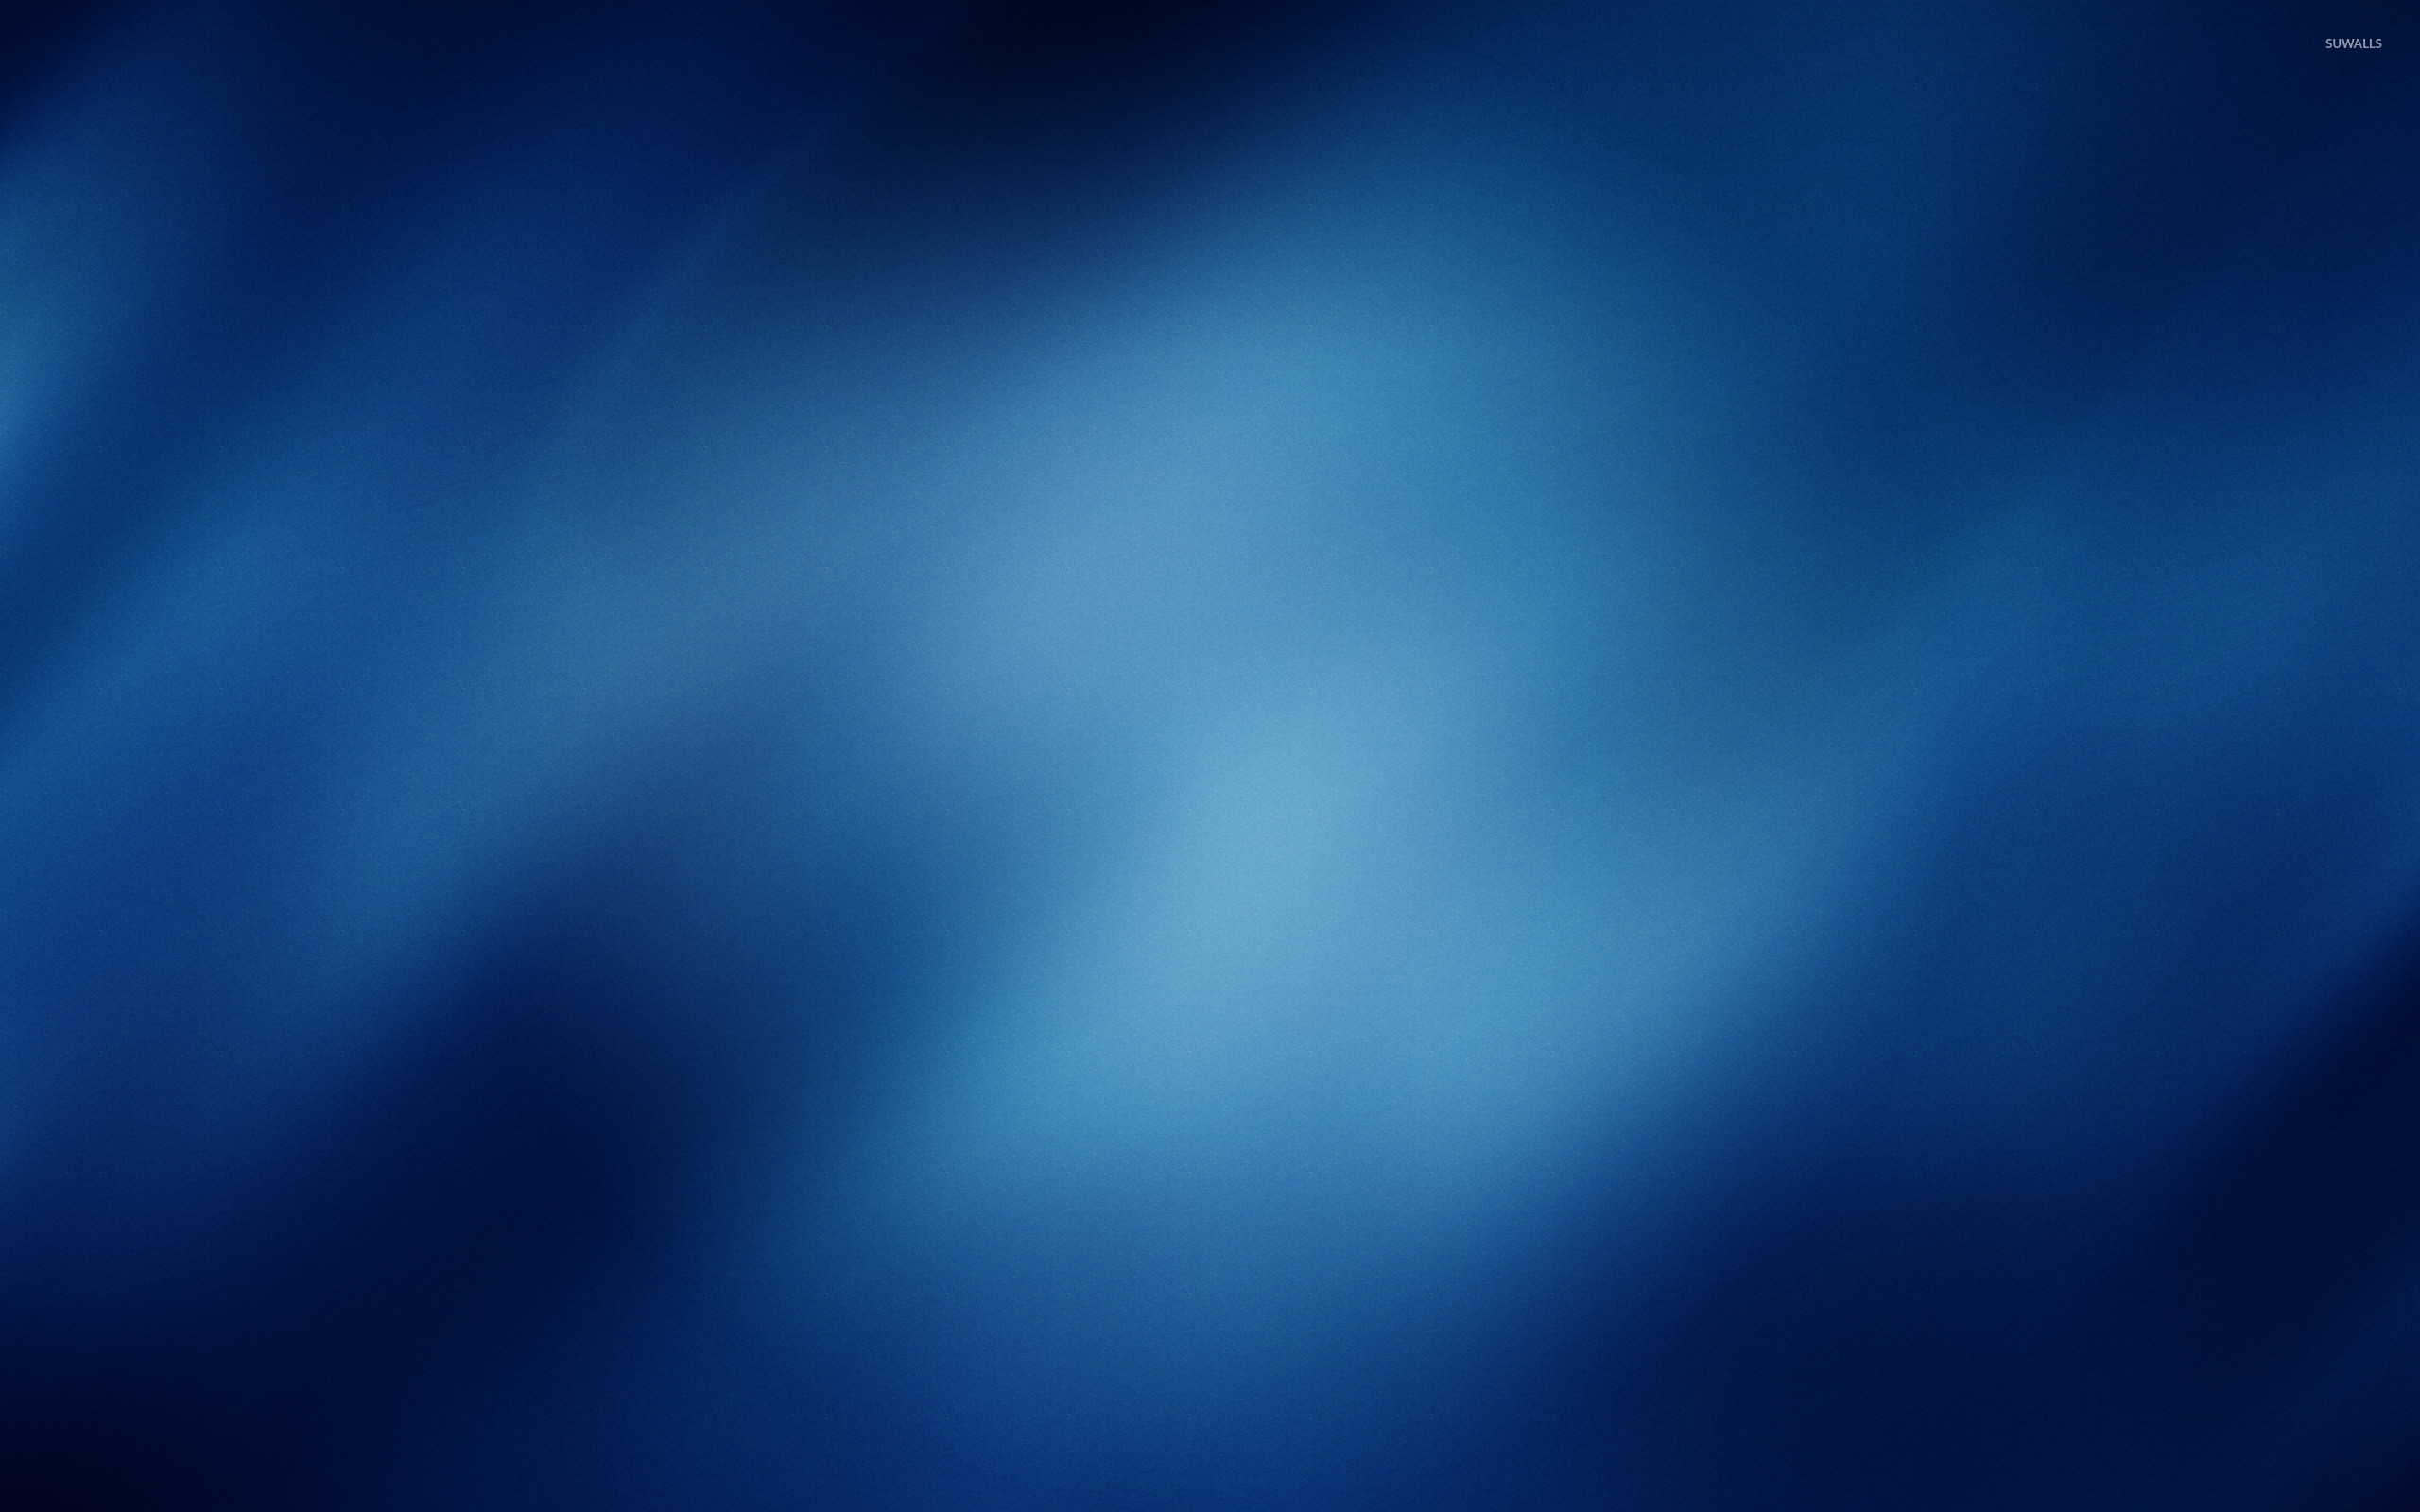 Blue gradient wallpaper abstract wallpapers 25907 for Blue wallpaper for walls